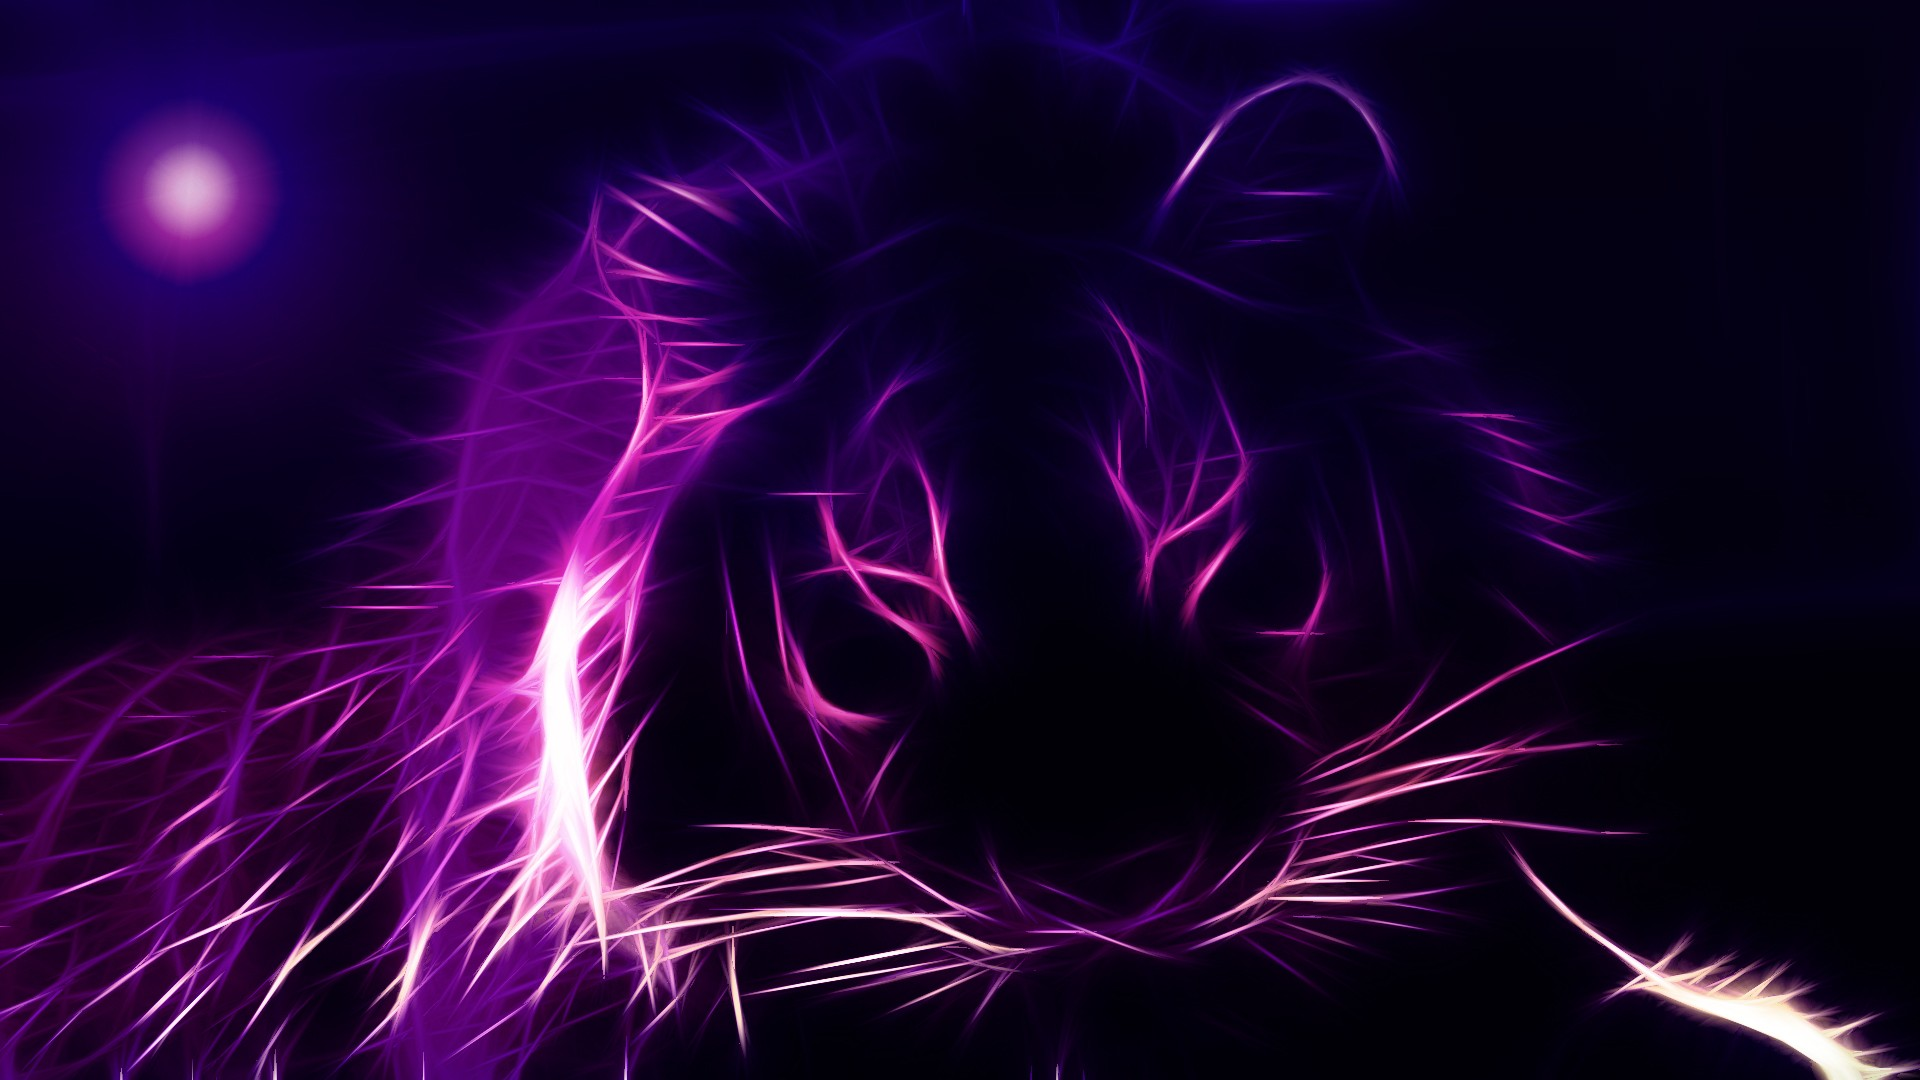 Purple Wallpaper Abstract HD 7040 Wallpaper Cool Walldiskpapercom 1920x1080